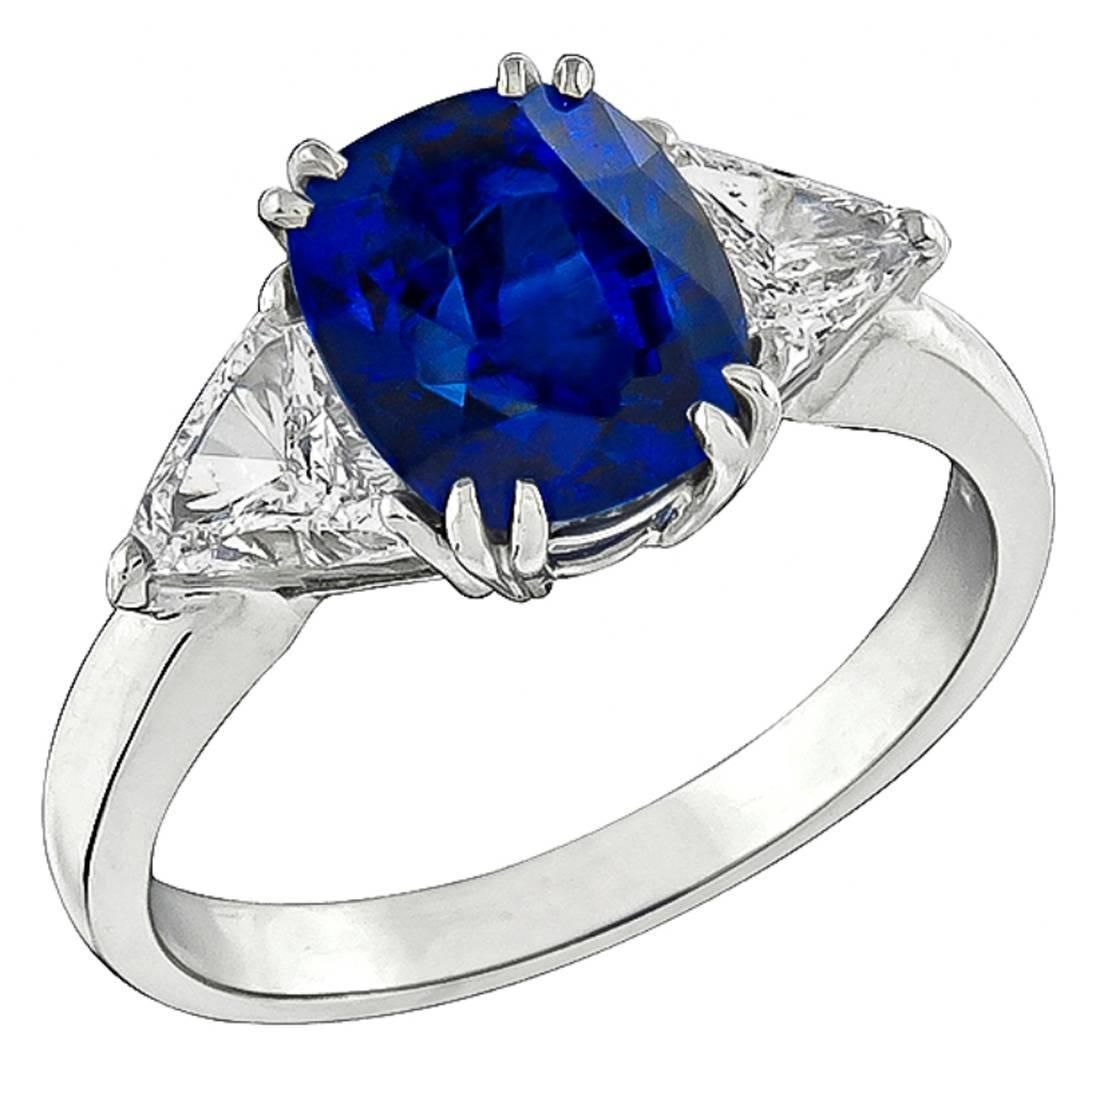 Natural 4 Carat Sapphire Diamond Platinum Engagement Ring | From a unique collection of vintage engagement rings at https://www.1stdibs.com/jewelry/rings/engagement-rings/